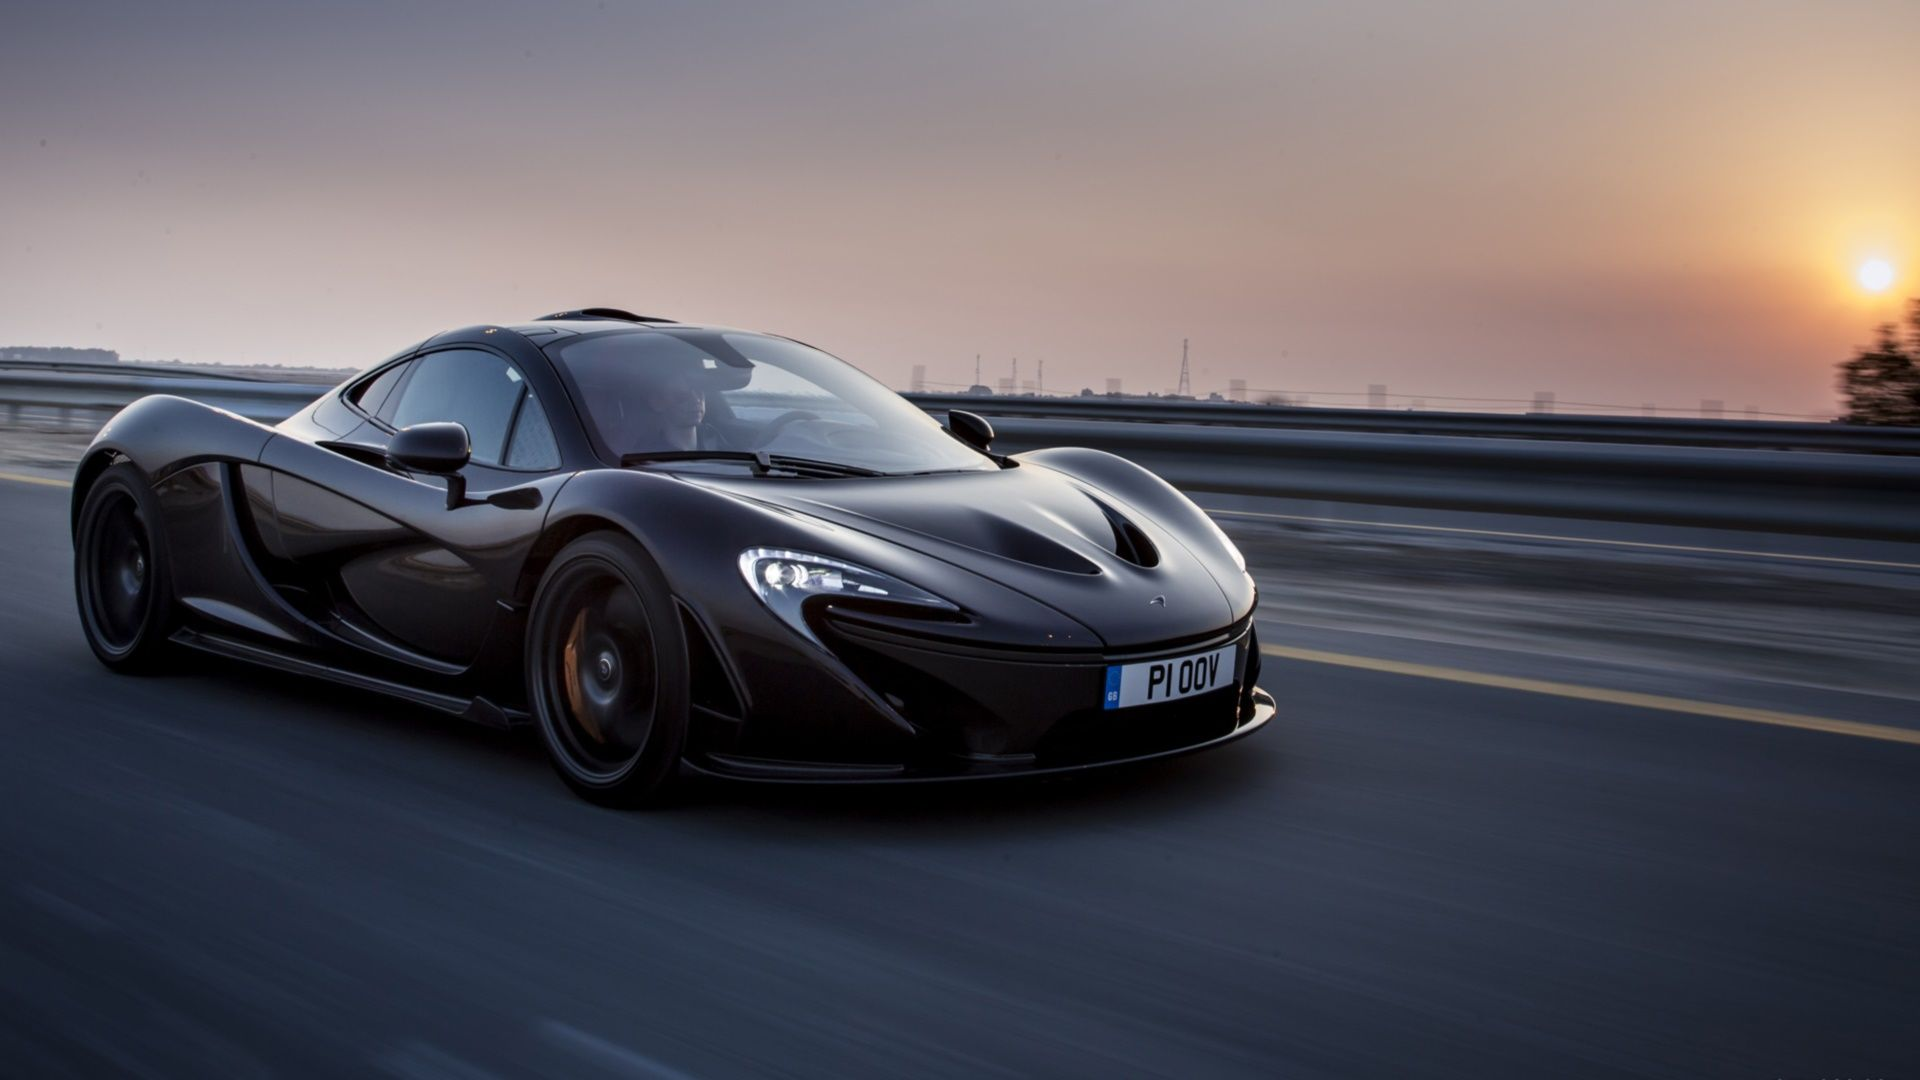 Mclaren Wallpaper Images Kad Cars In 2019 Mclaren P1 Super